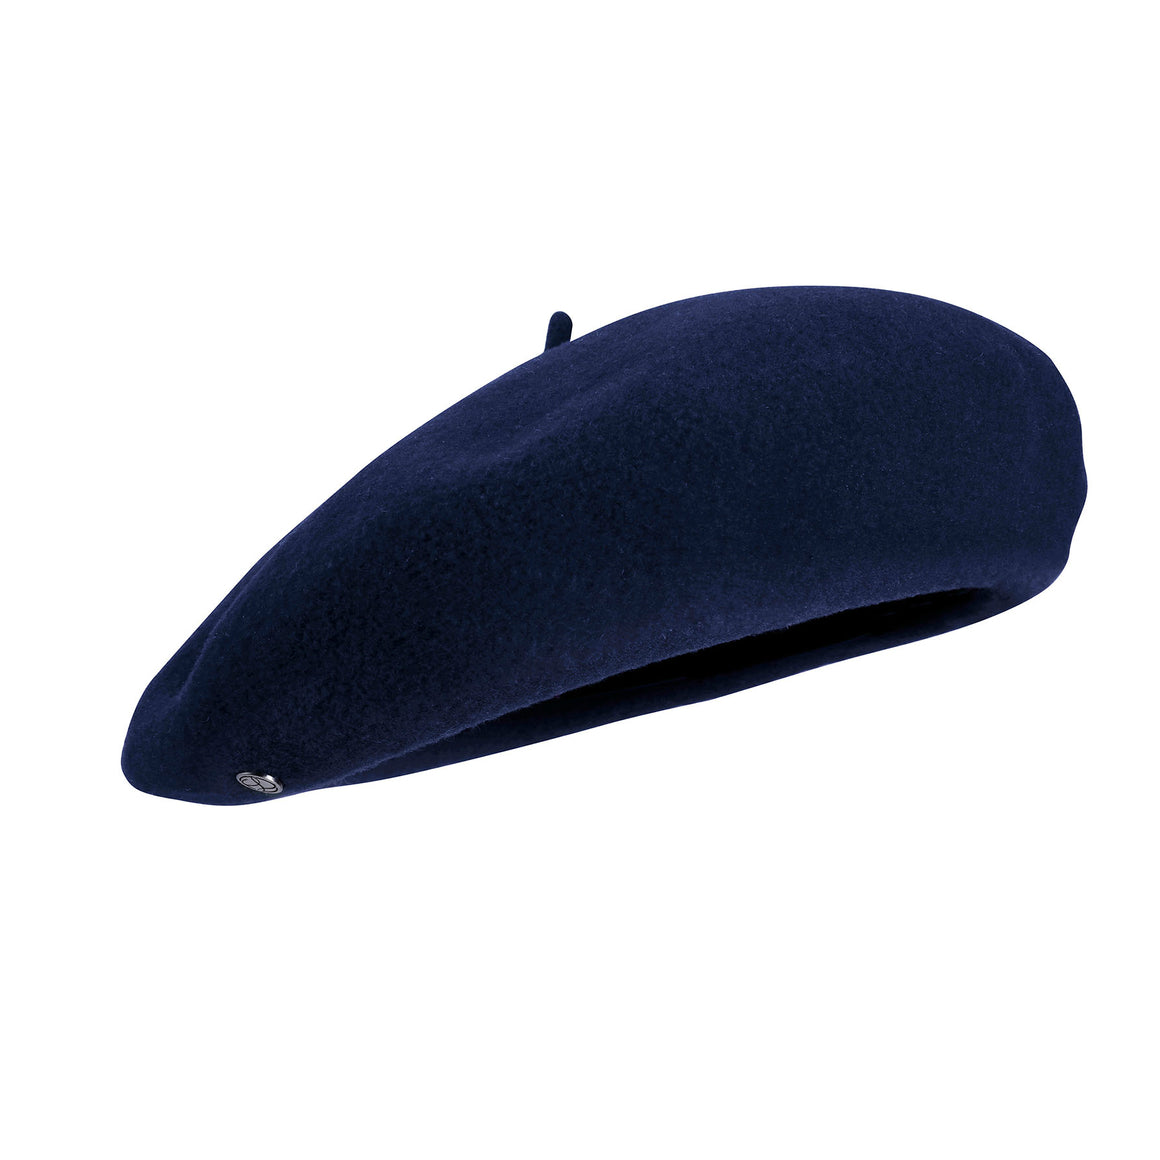 Laulhere | Authentic French Beret | Cashmere Beret in Gift Box | buy now at The Cashmere Choice London